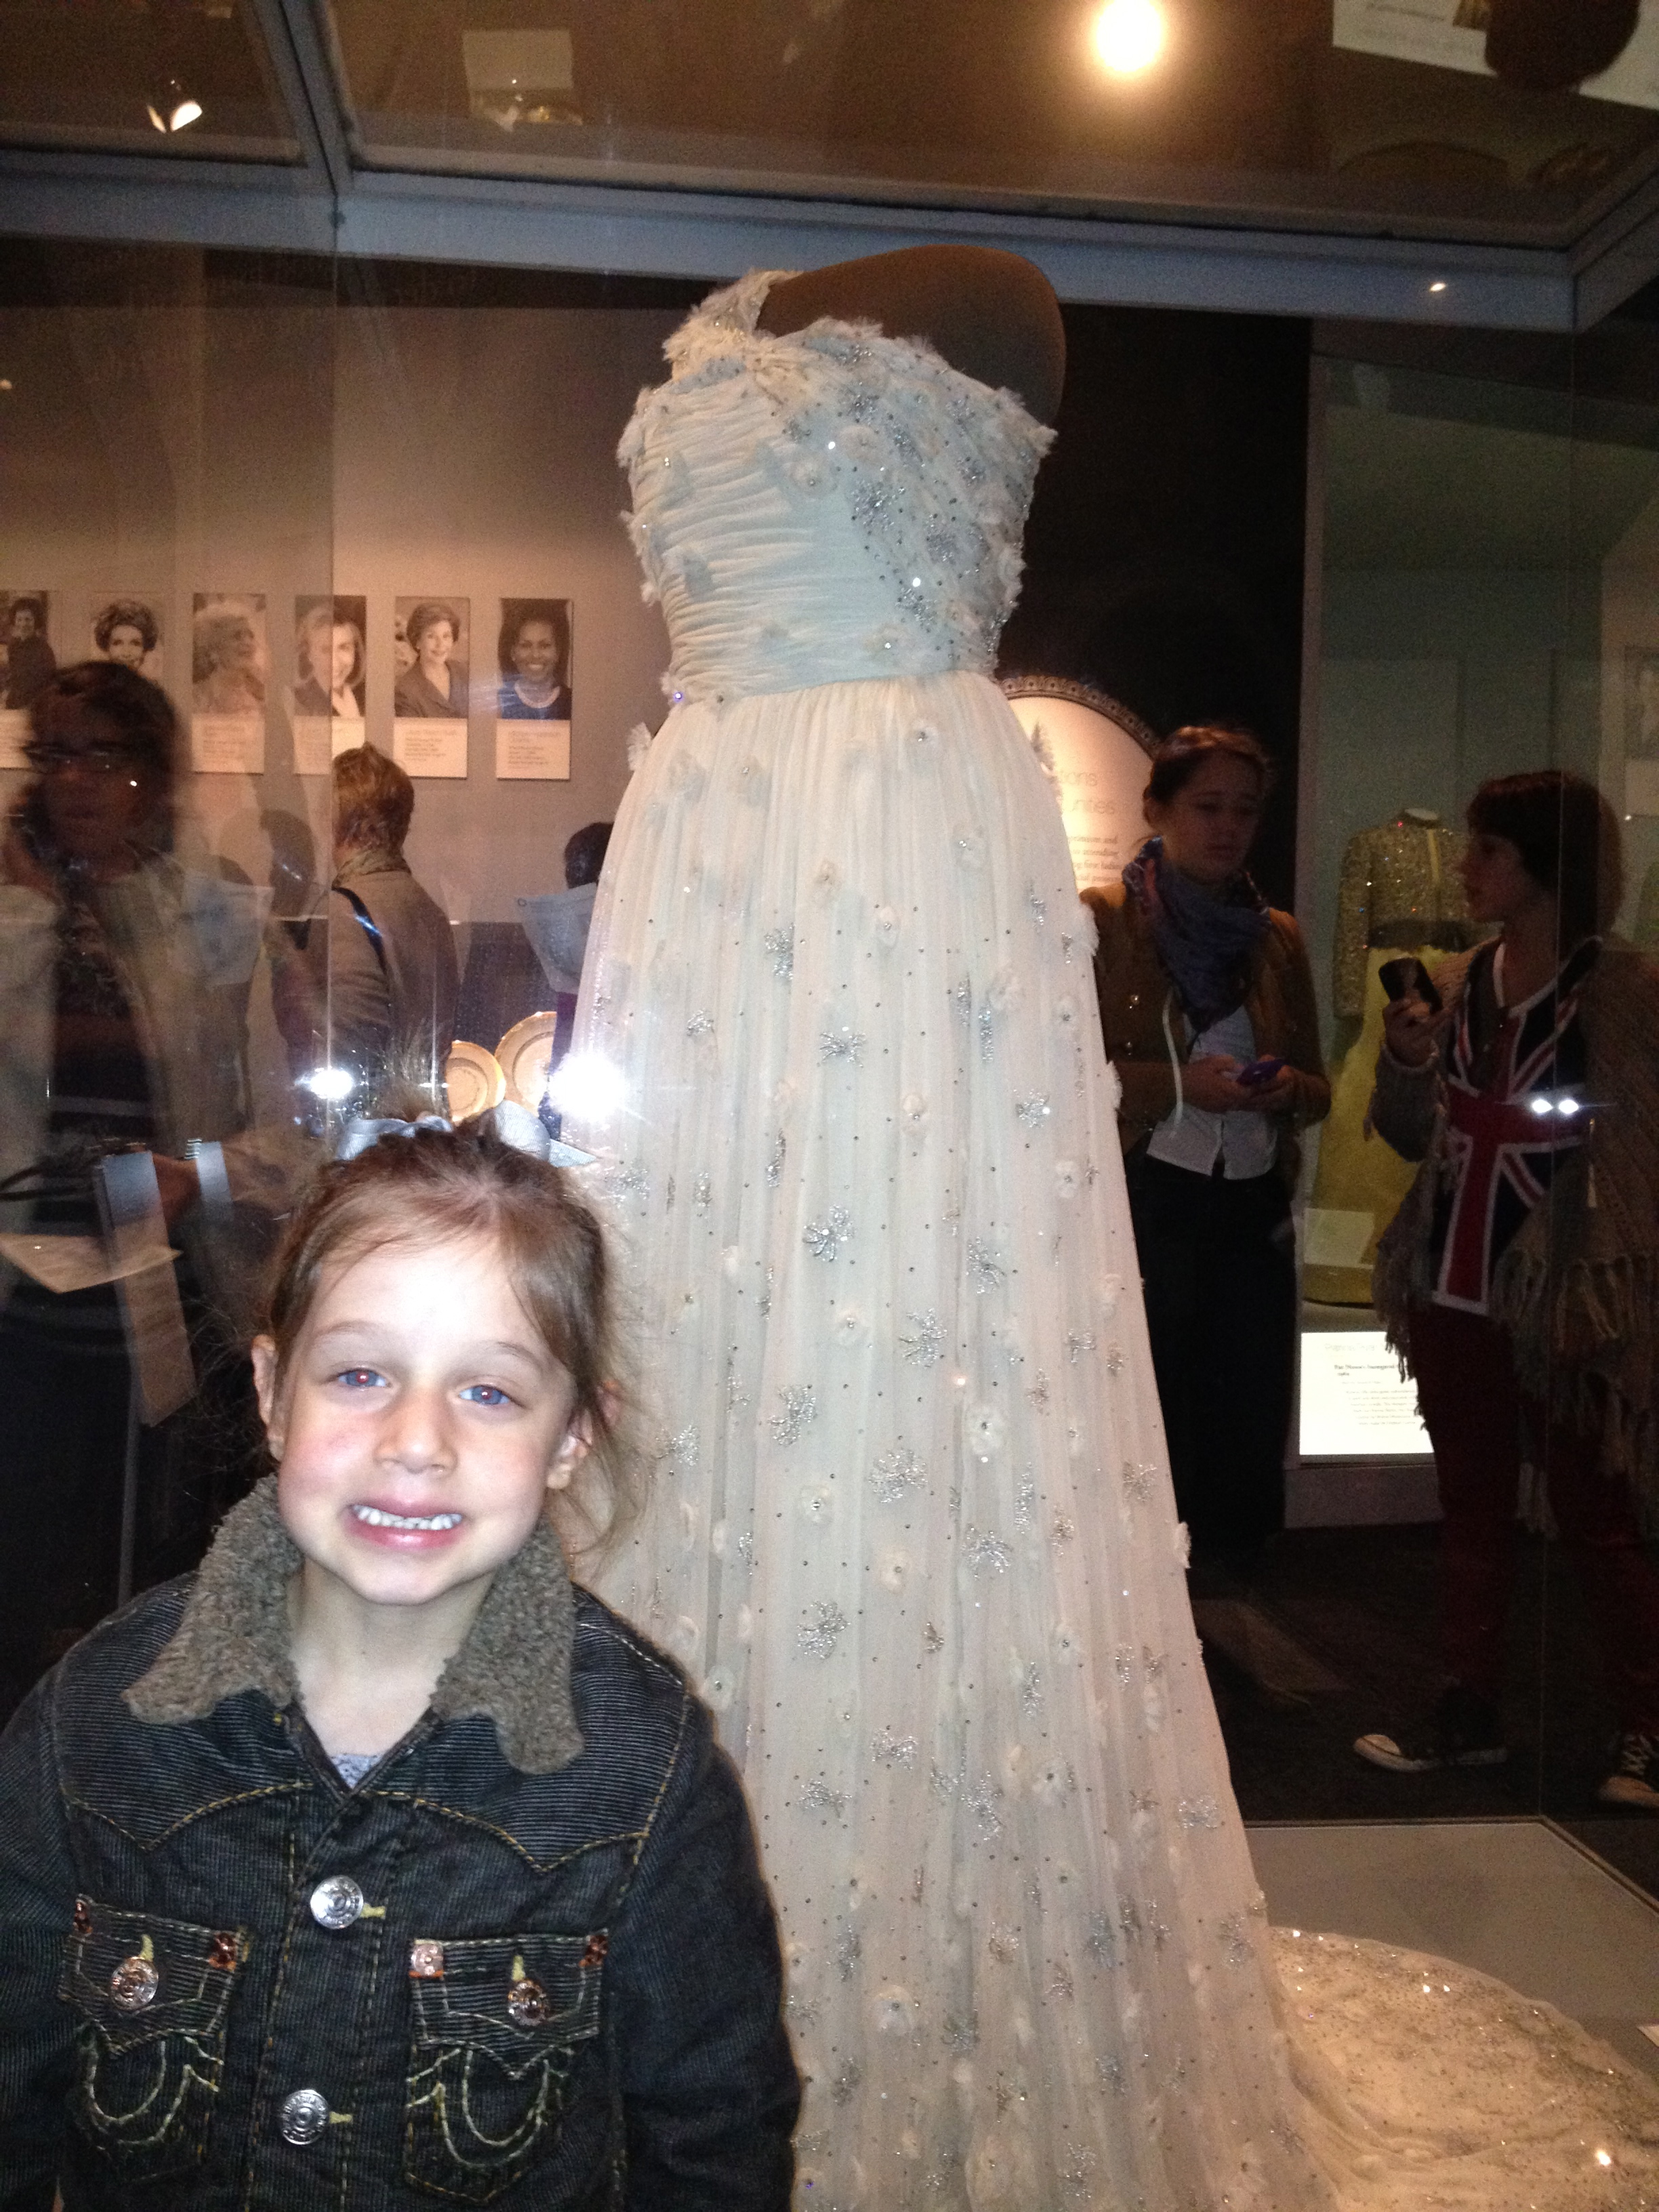 Annaliese with the First Lady's Inaugural Gown